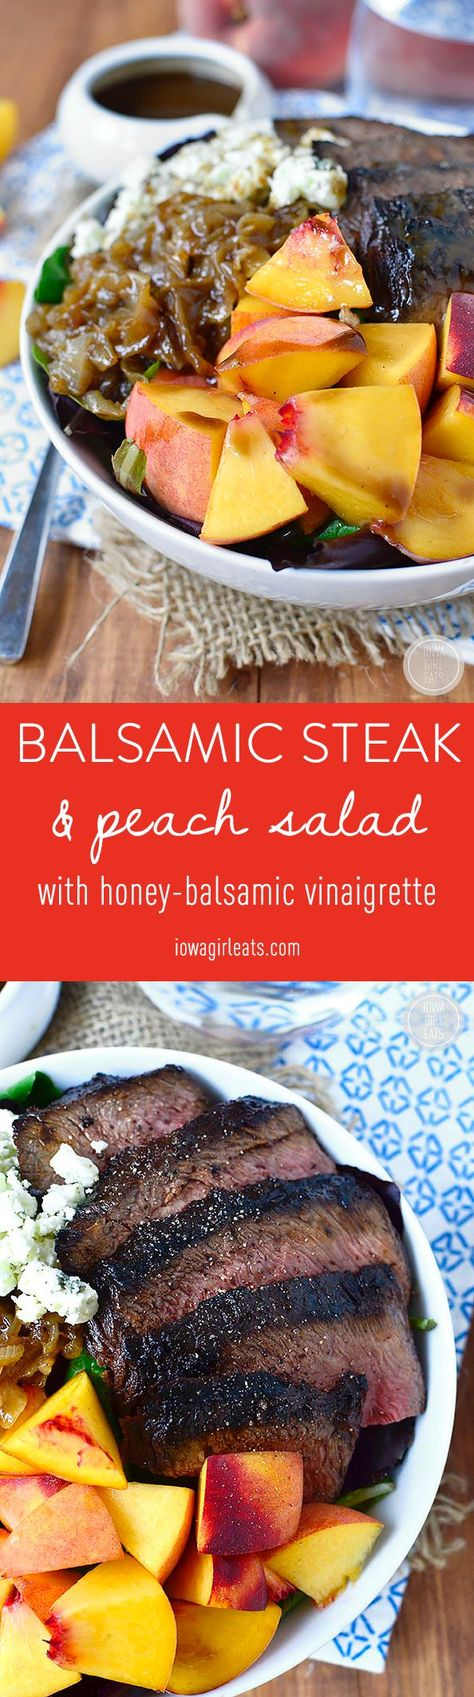 Balsamic Steak and Peach Salad is a fresh and filling entree salad with the sweet and savory flavors of balsamic vinegar, peaches, and gorgonzola cheese. #glutenfree   iowagirleats.com